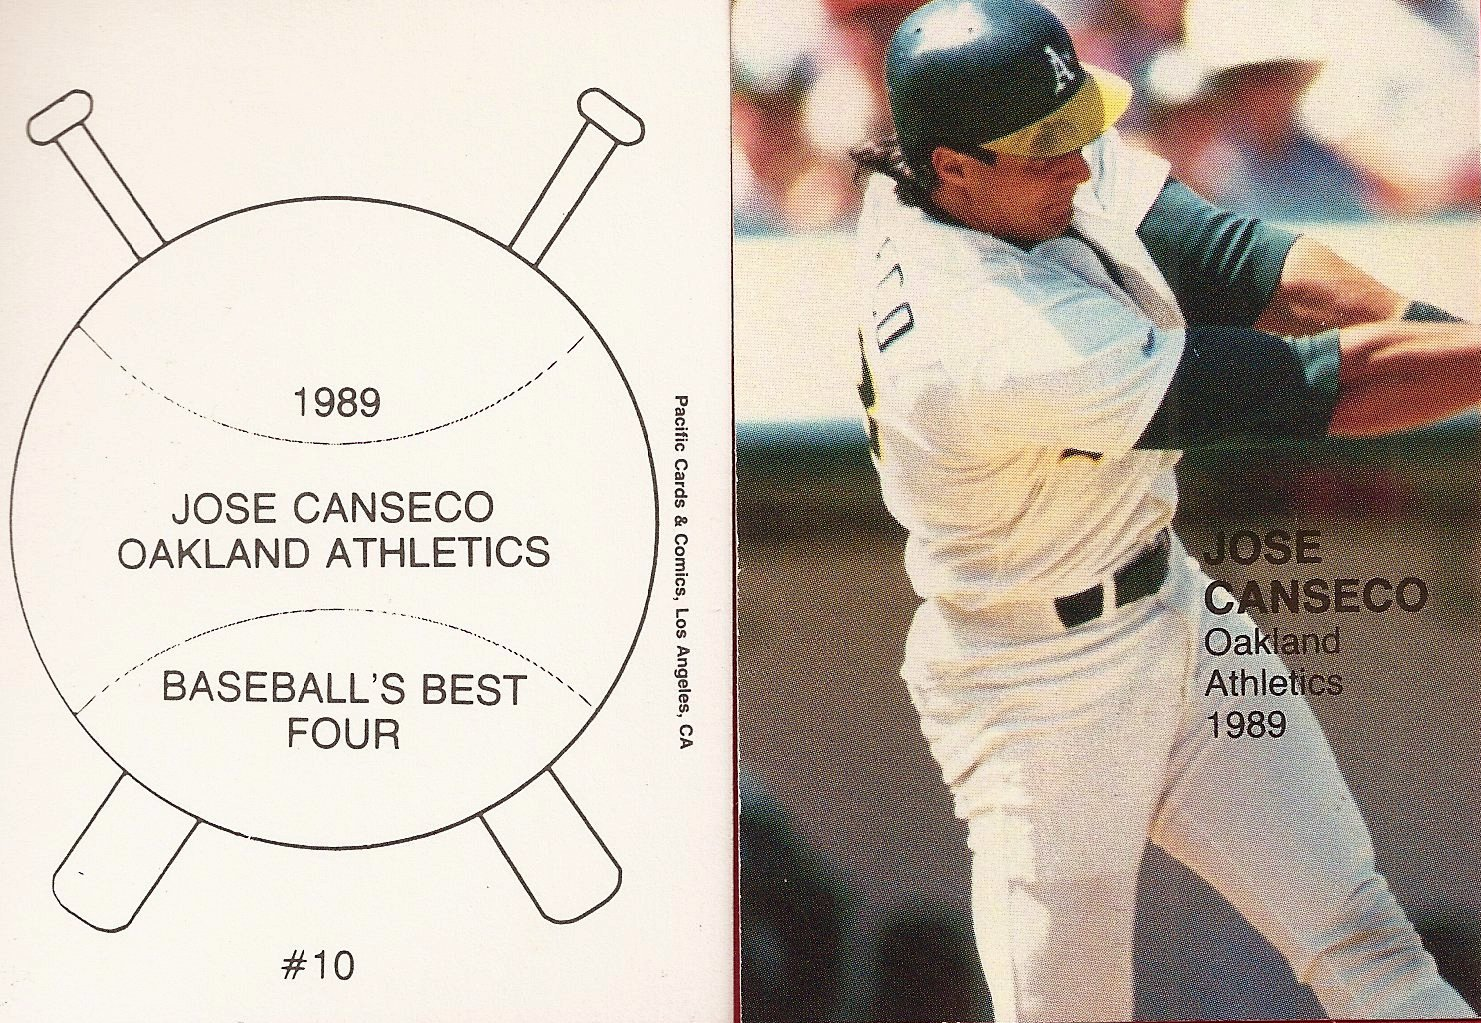 1989 Pacific Cards & Comics Baseballs Best Four